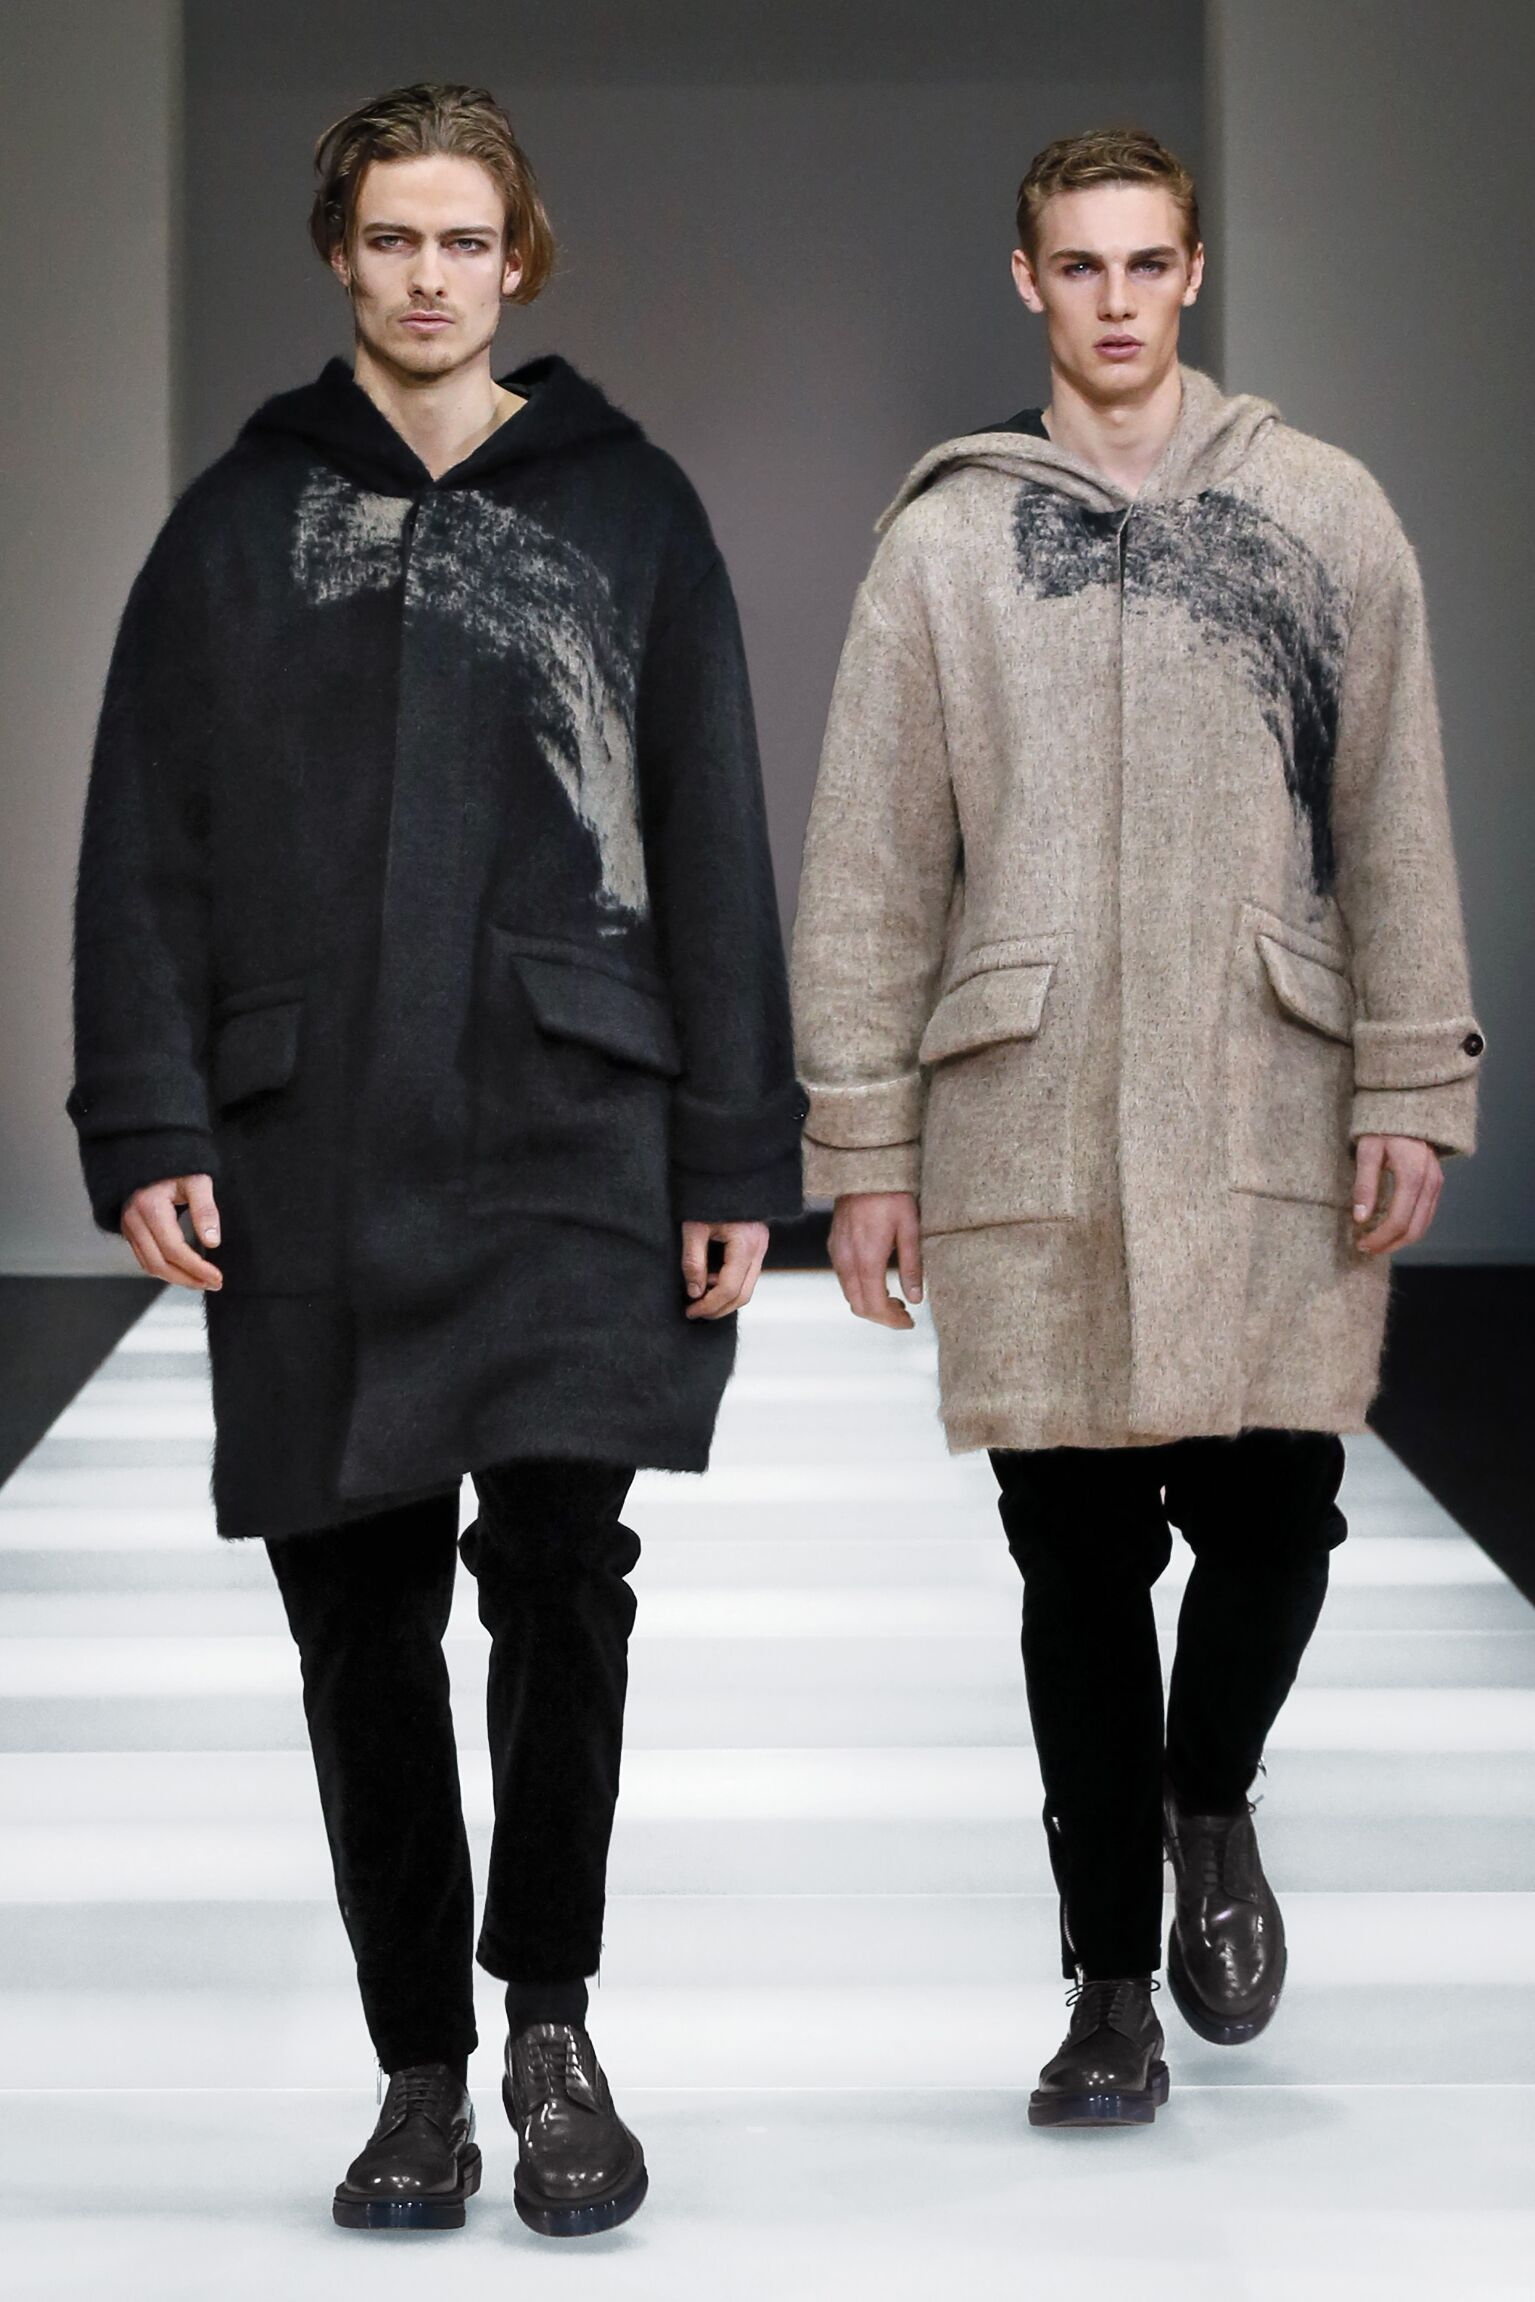 Winter 2015 Fashion Show Emporio Armani Collection